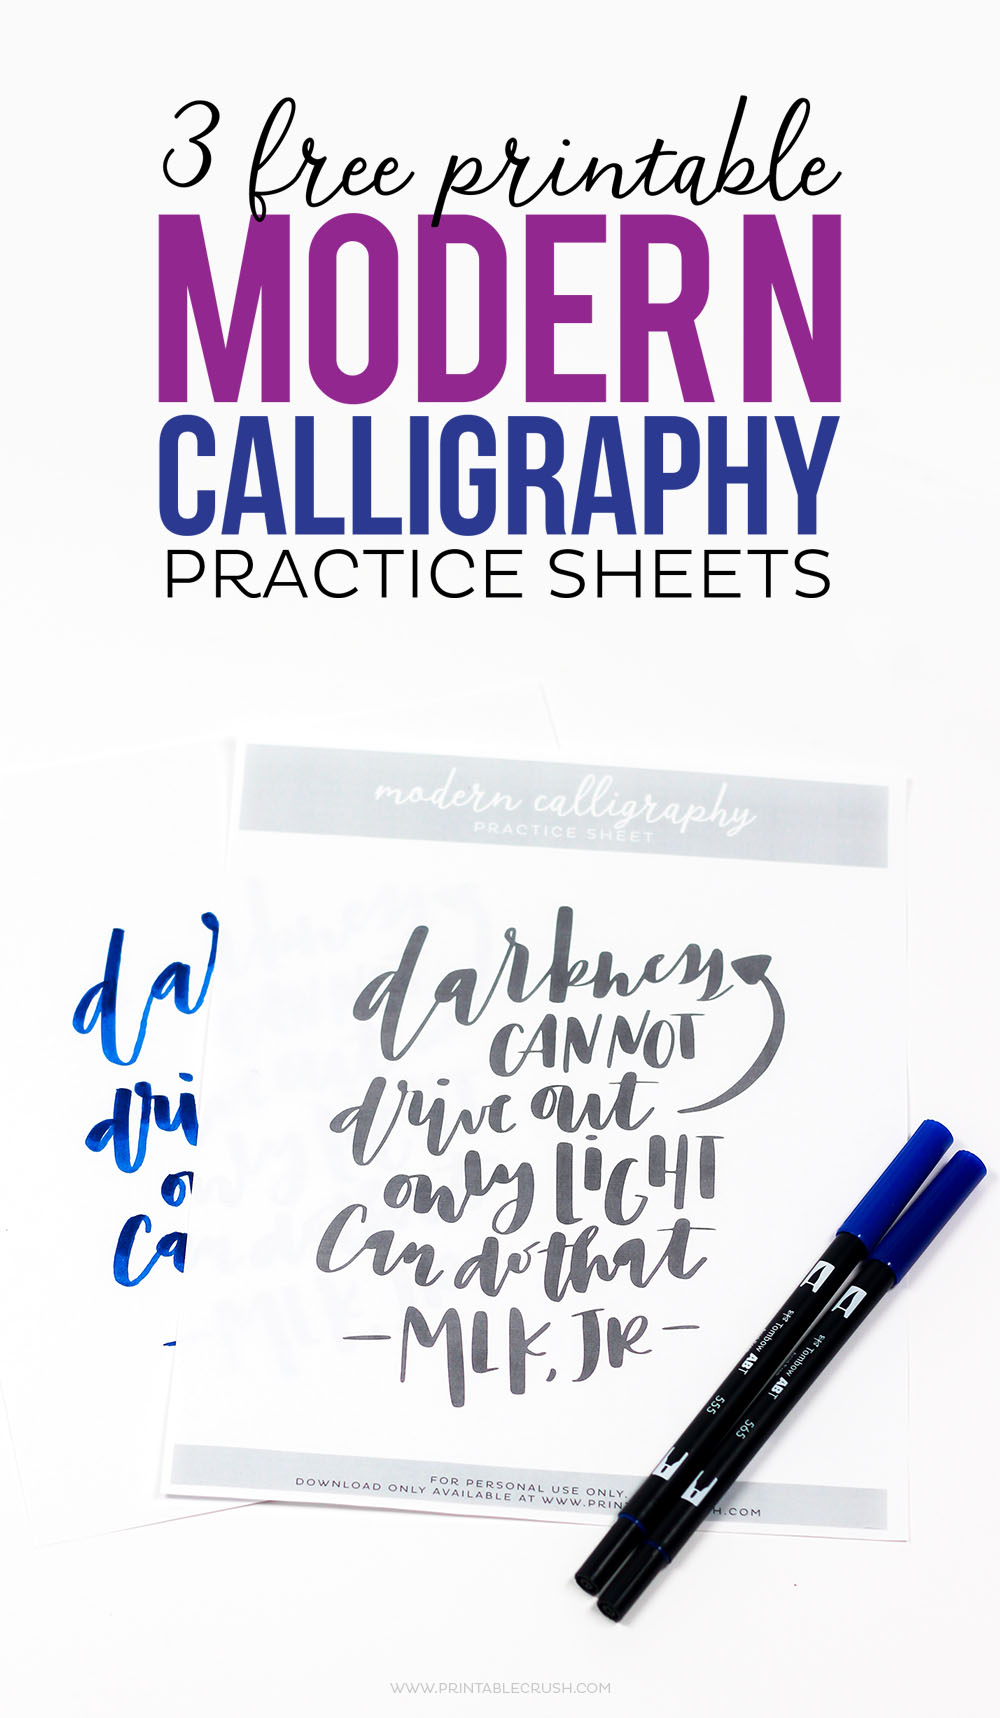 graphic relating to Printable Calligraphy Practice Sheets called 3 No cost Printable Revolutionary Calligraphy Educate Sheets